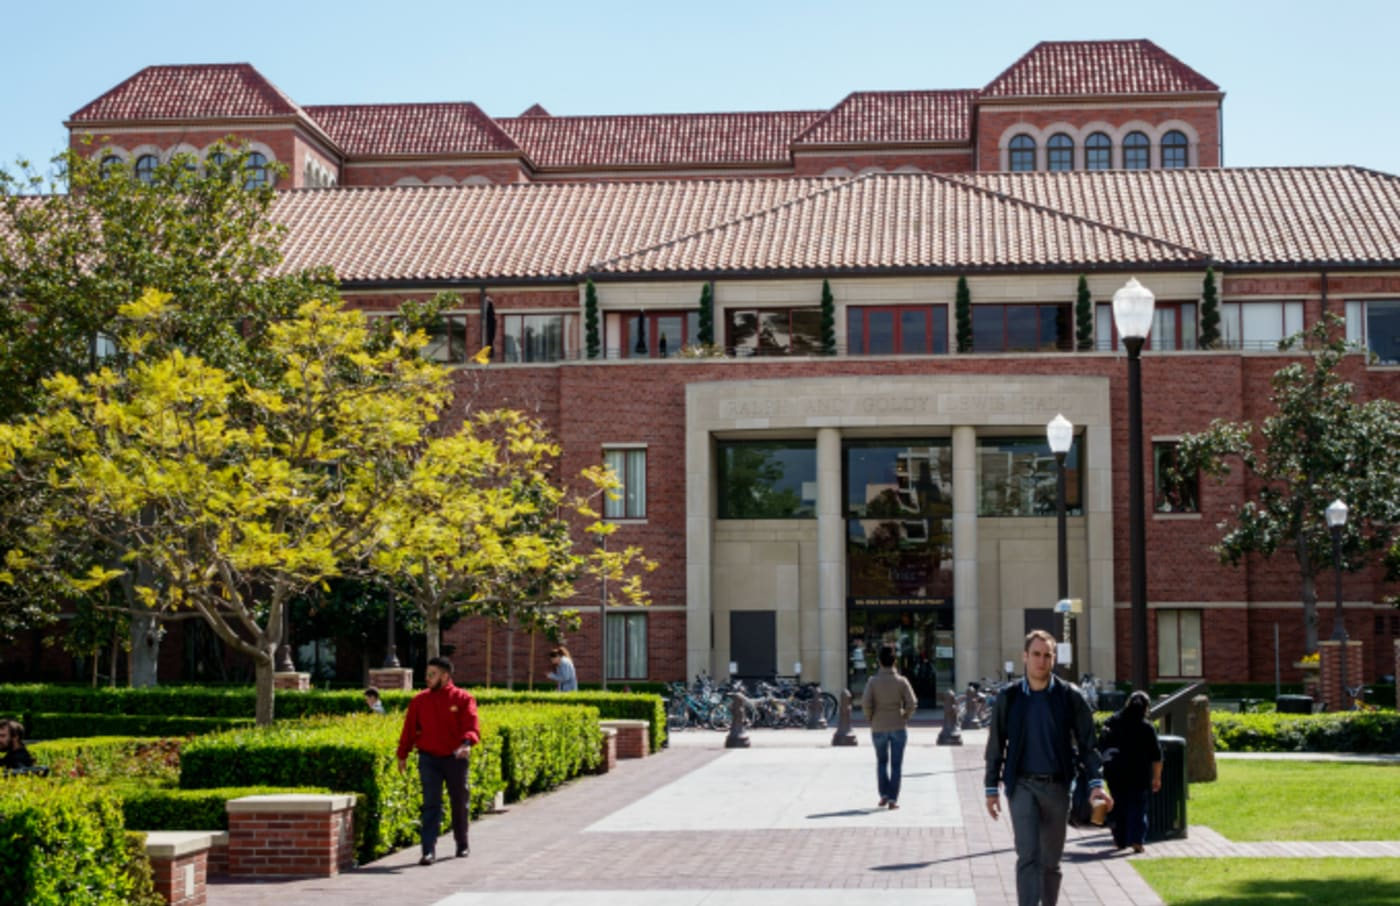 The exterior of the University of Southern California